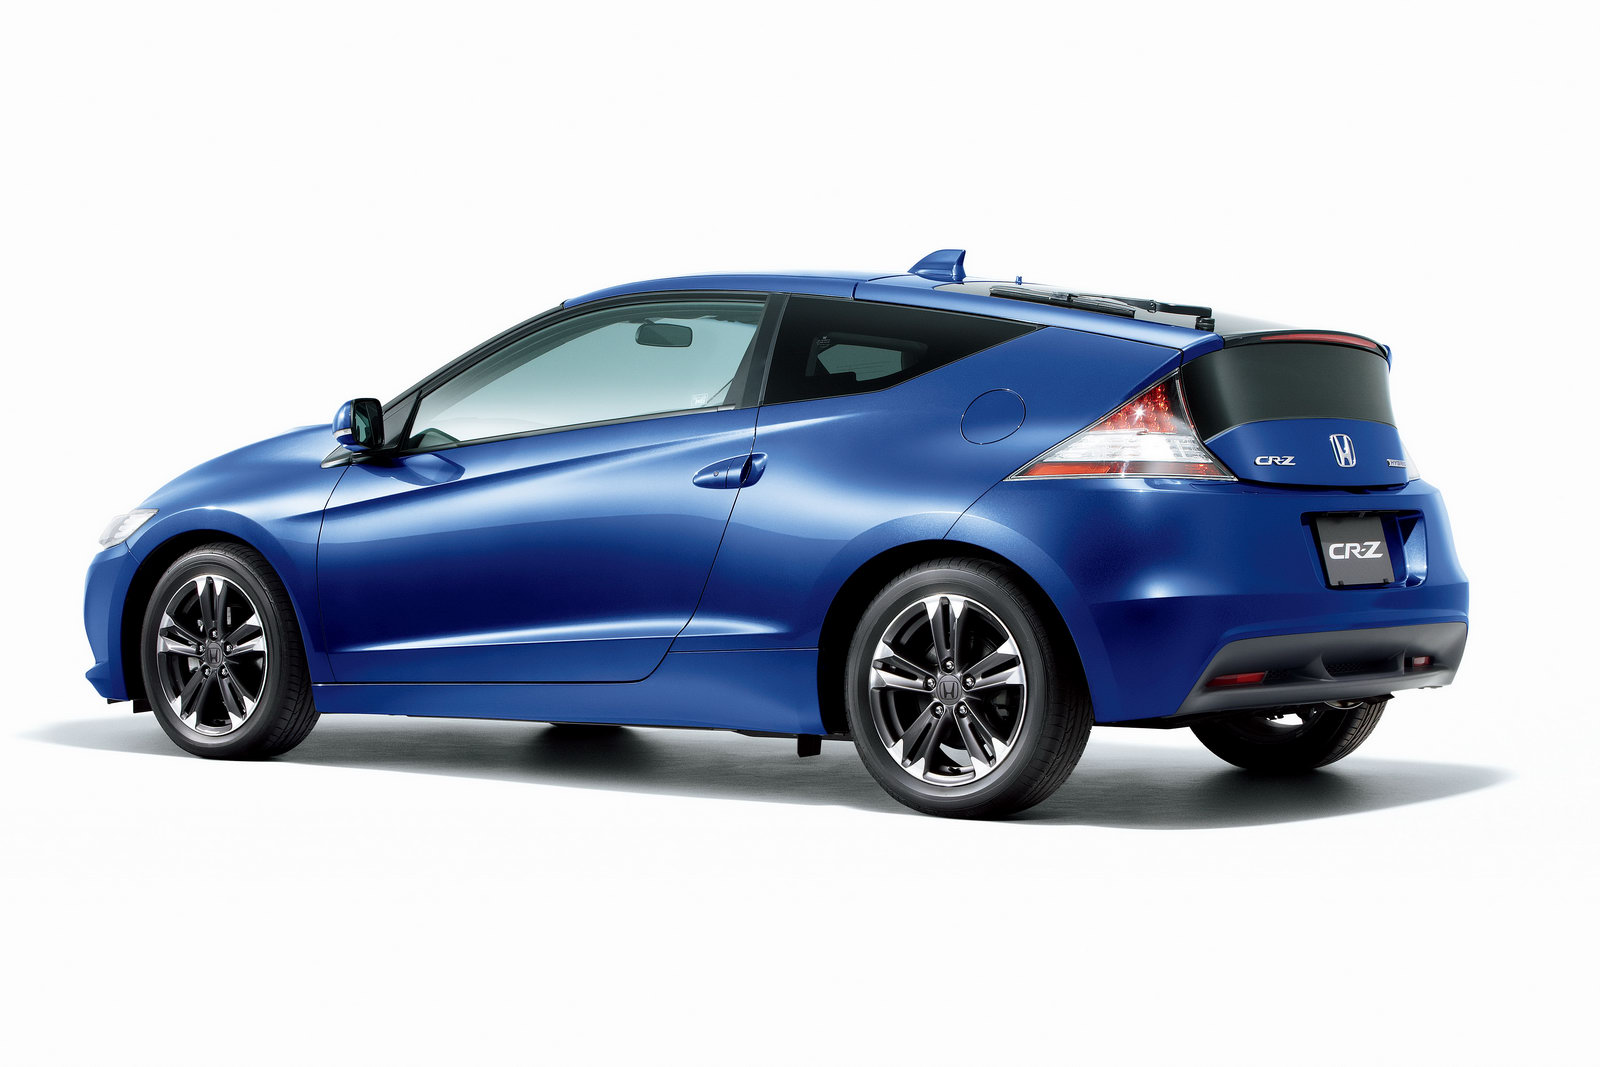 Honda CR-Z Sports Hybrid 2016 Exterior Rear Side View